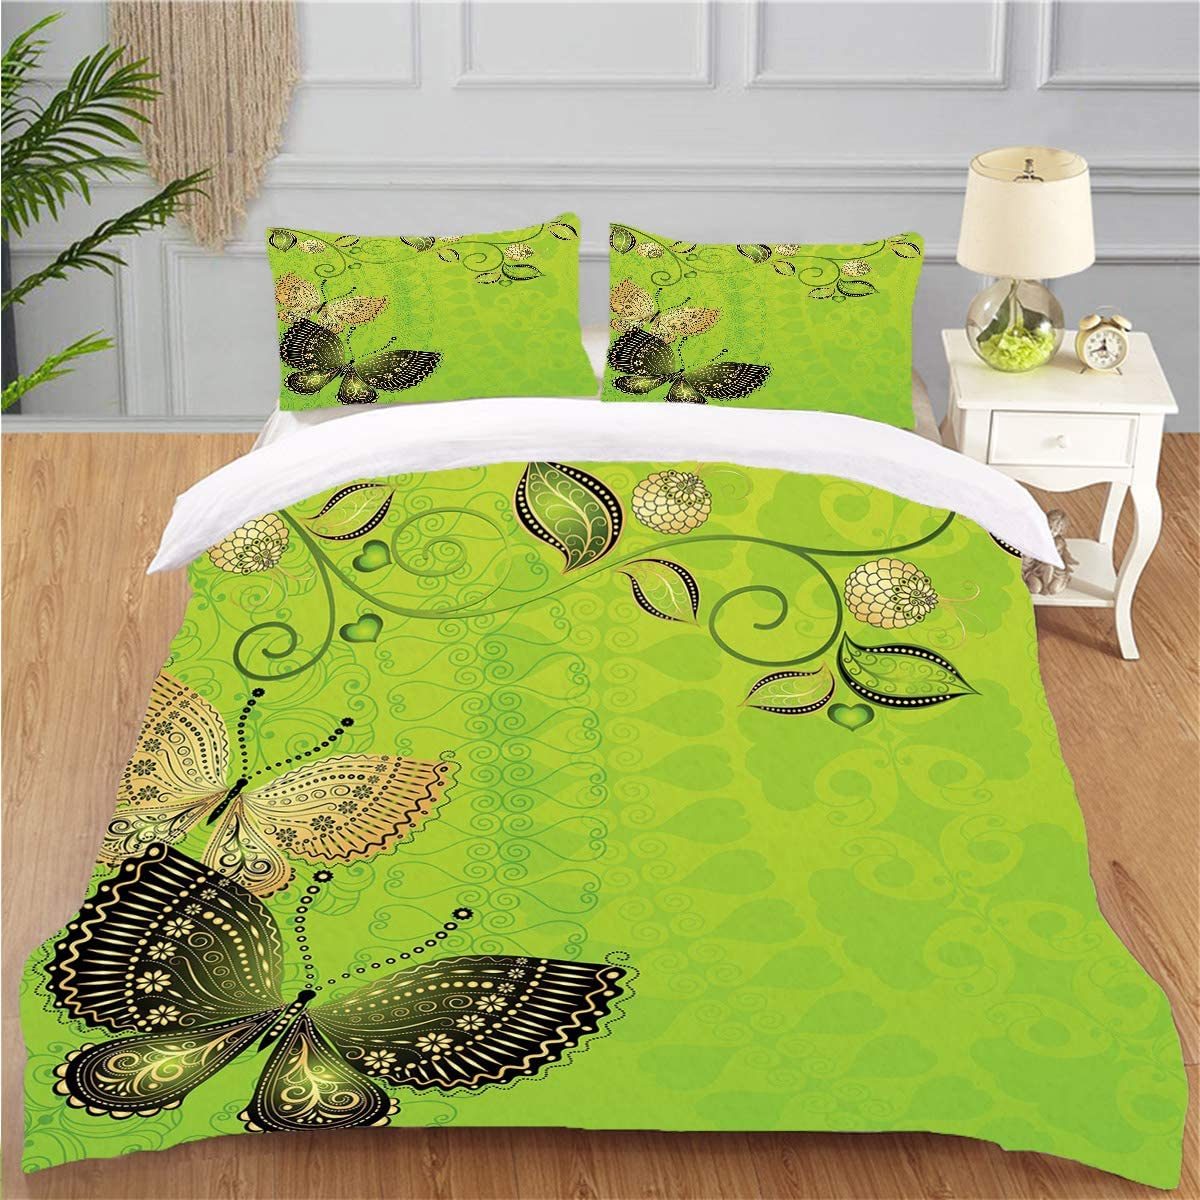 Bedding Personality 3 Piece Duvet Cover Set Green Floral Spring Theme Vintage Style Butterflies Abstract Composition Apple Green Gold Black Soft Breathable Home Warm Duvet Comforter Cover,FULL